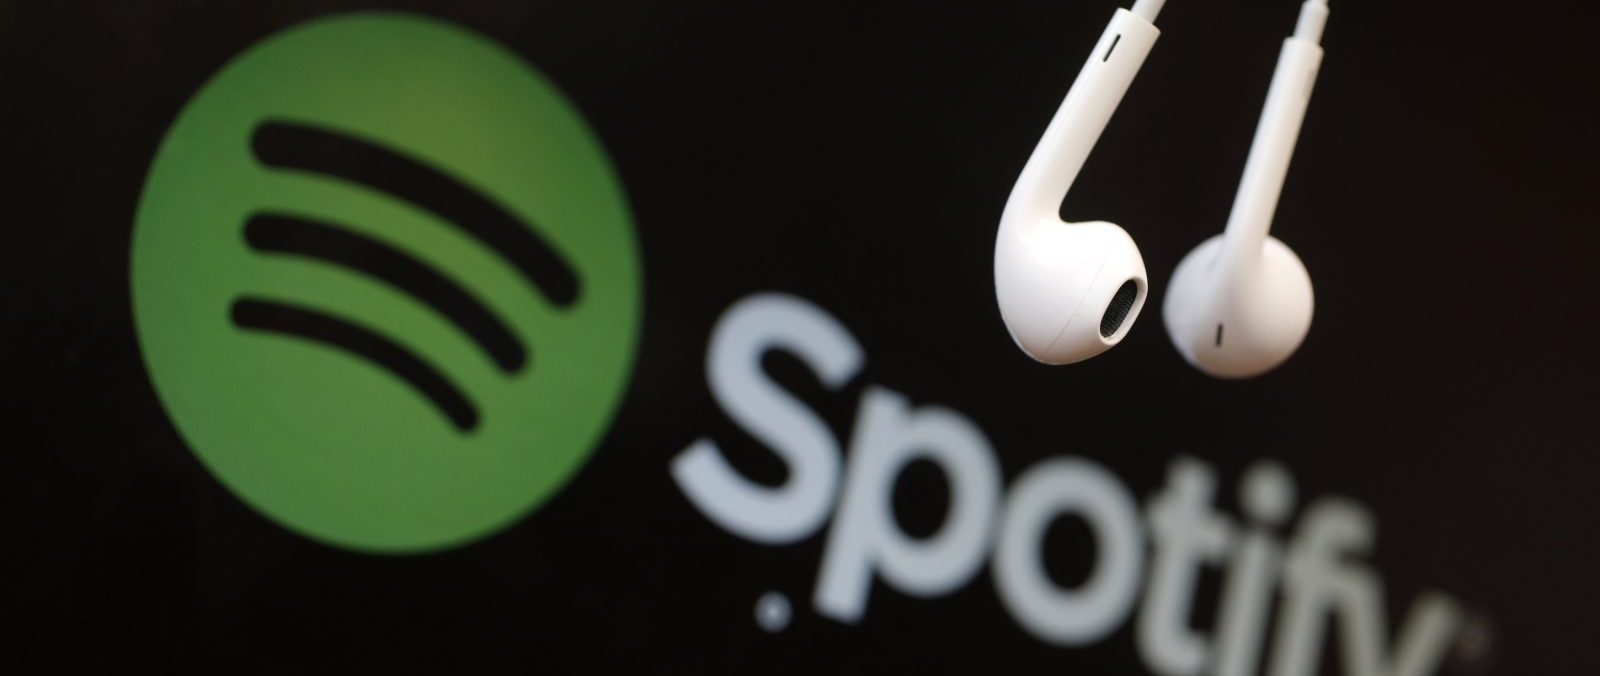 Headphones are seen in front of a logo of online music streaming service Spotify in this illustration picture